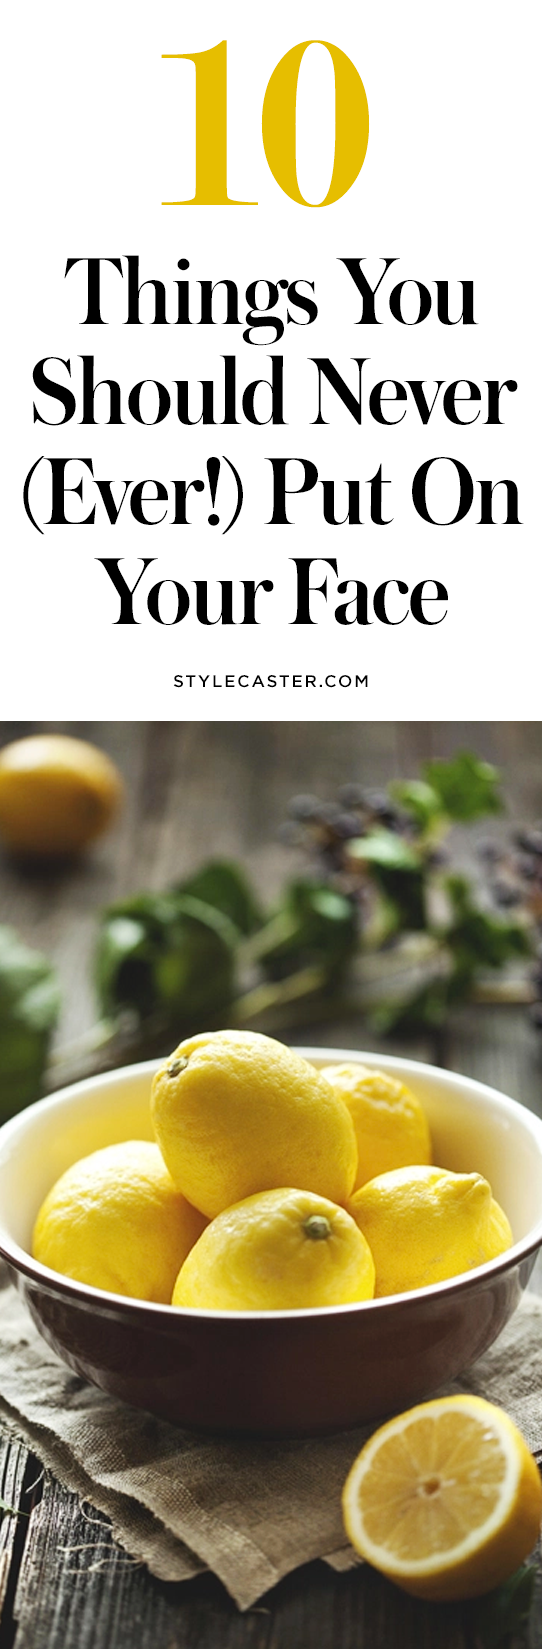 10 things to never put on your face | @stylecaster